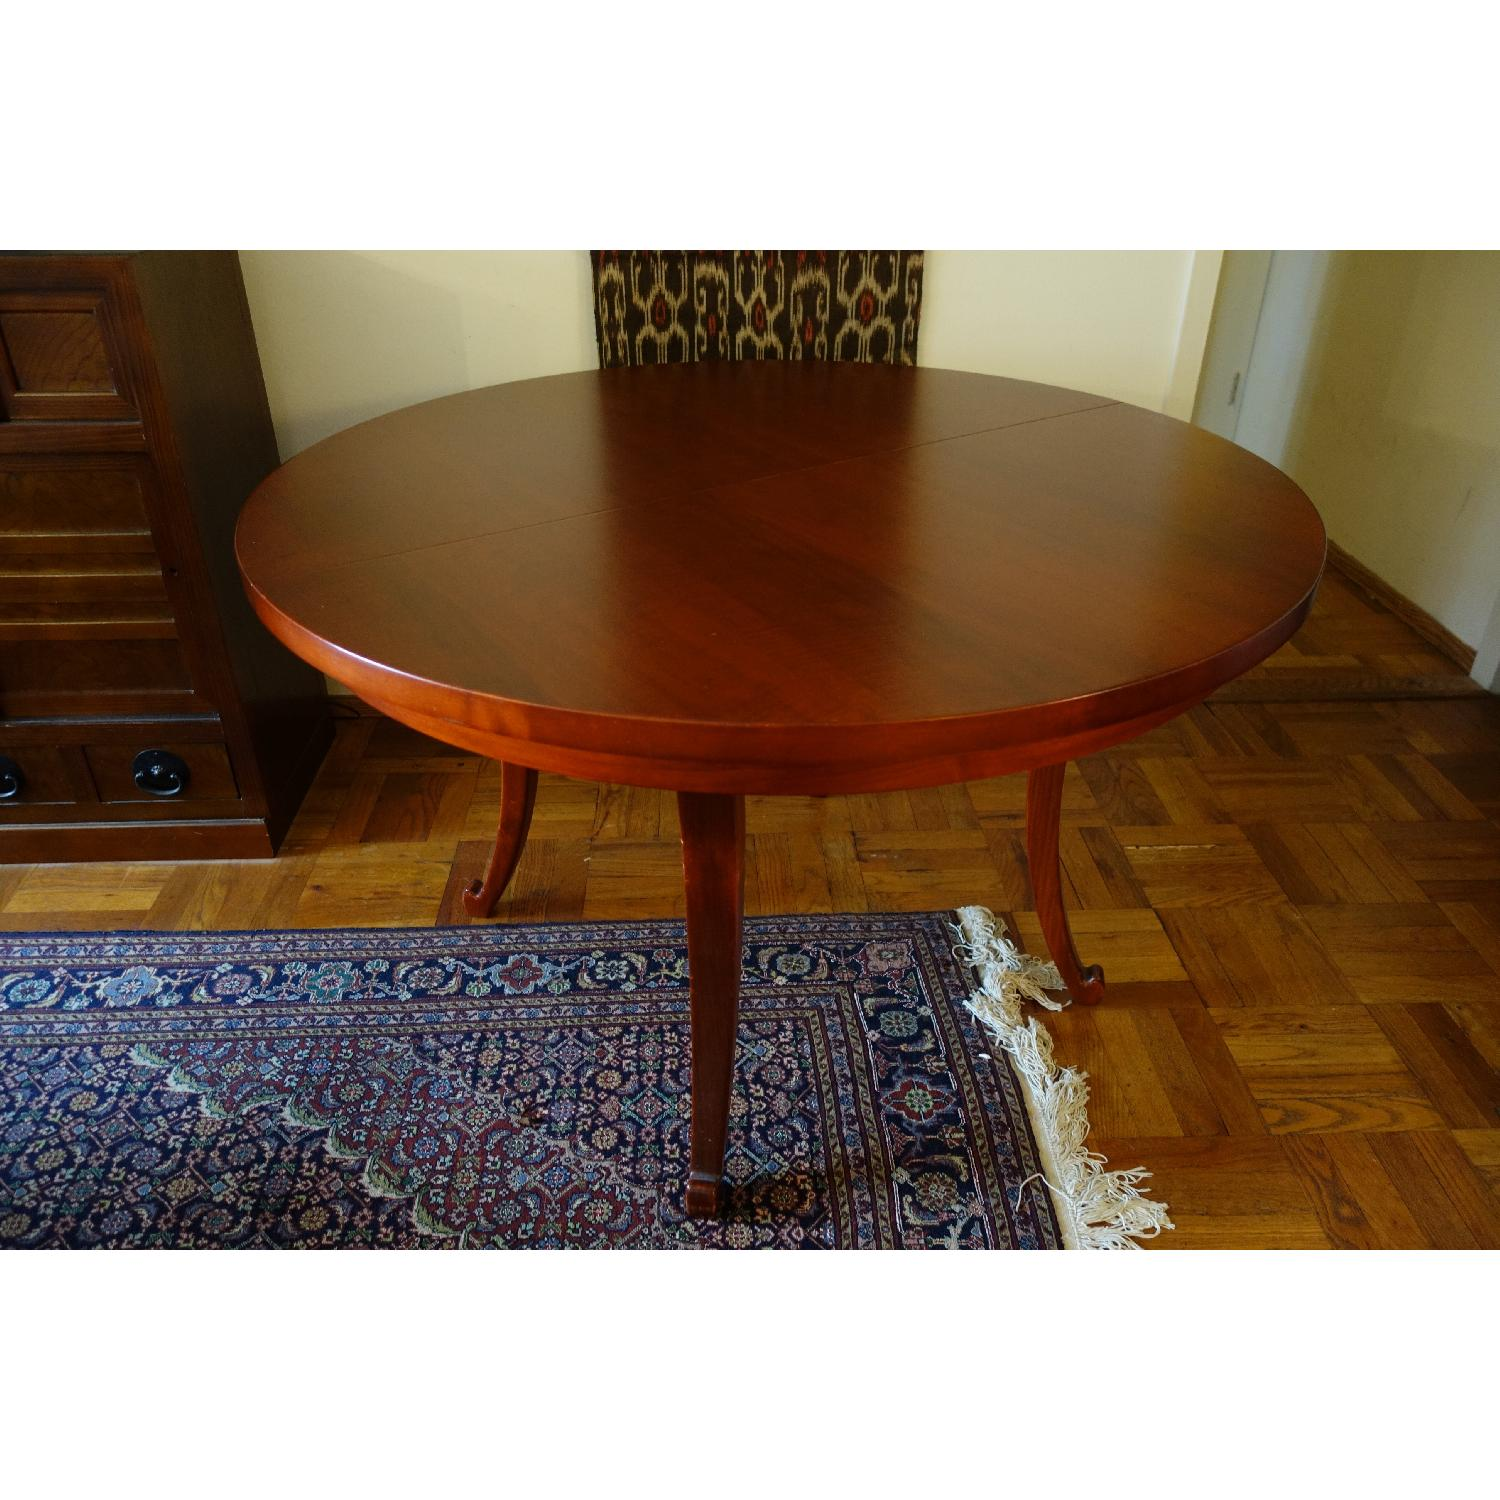 Dialogica Curl Oval Mahogany Dining Table - image-1